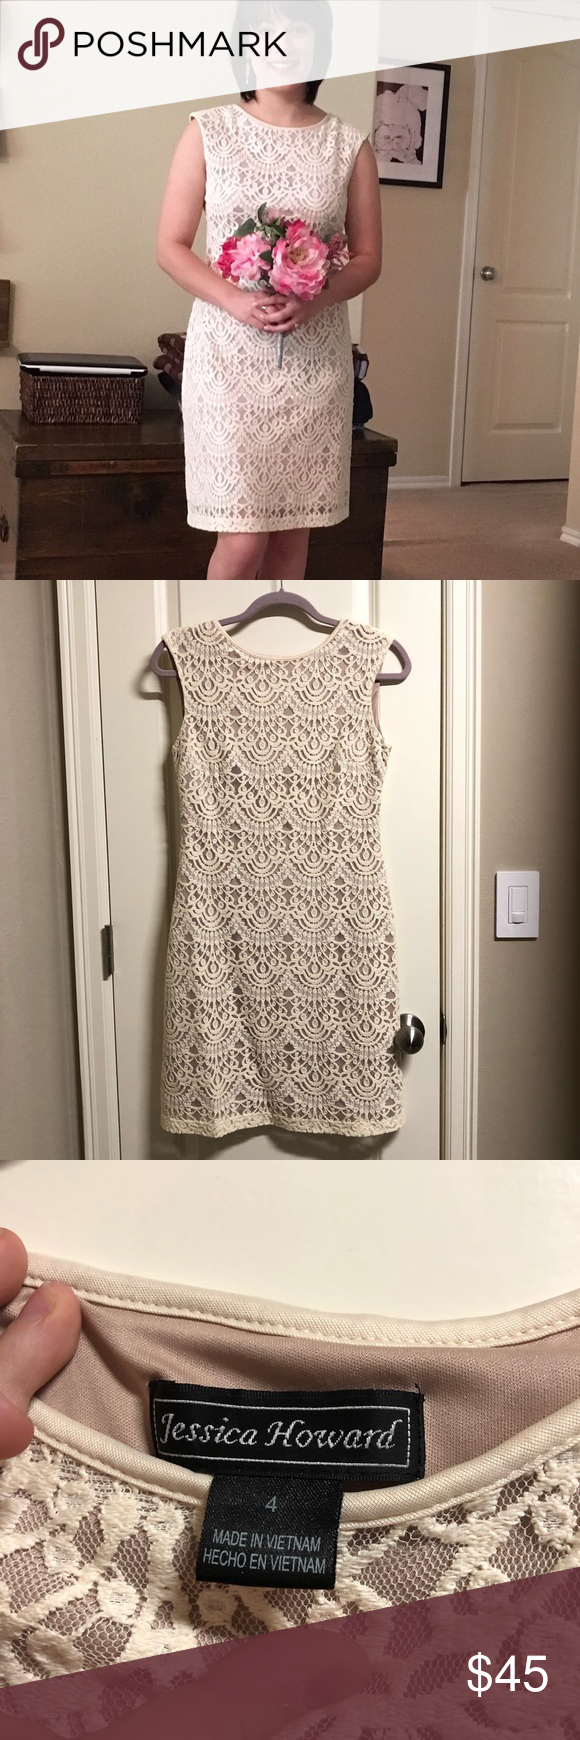 Jessica Howard Ivory Lace Dress Jessica Howard Beautiful